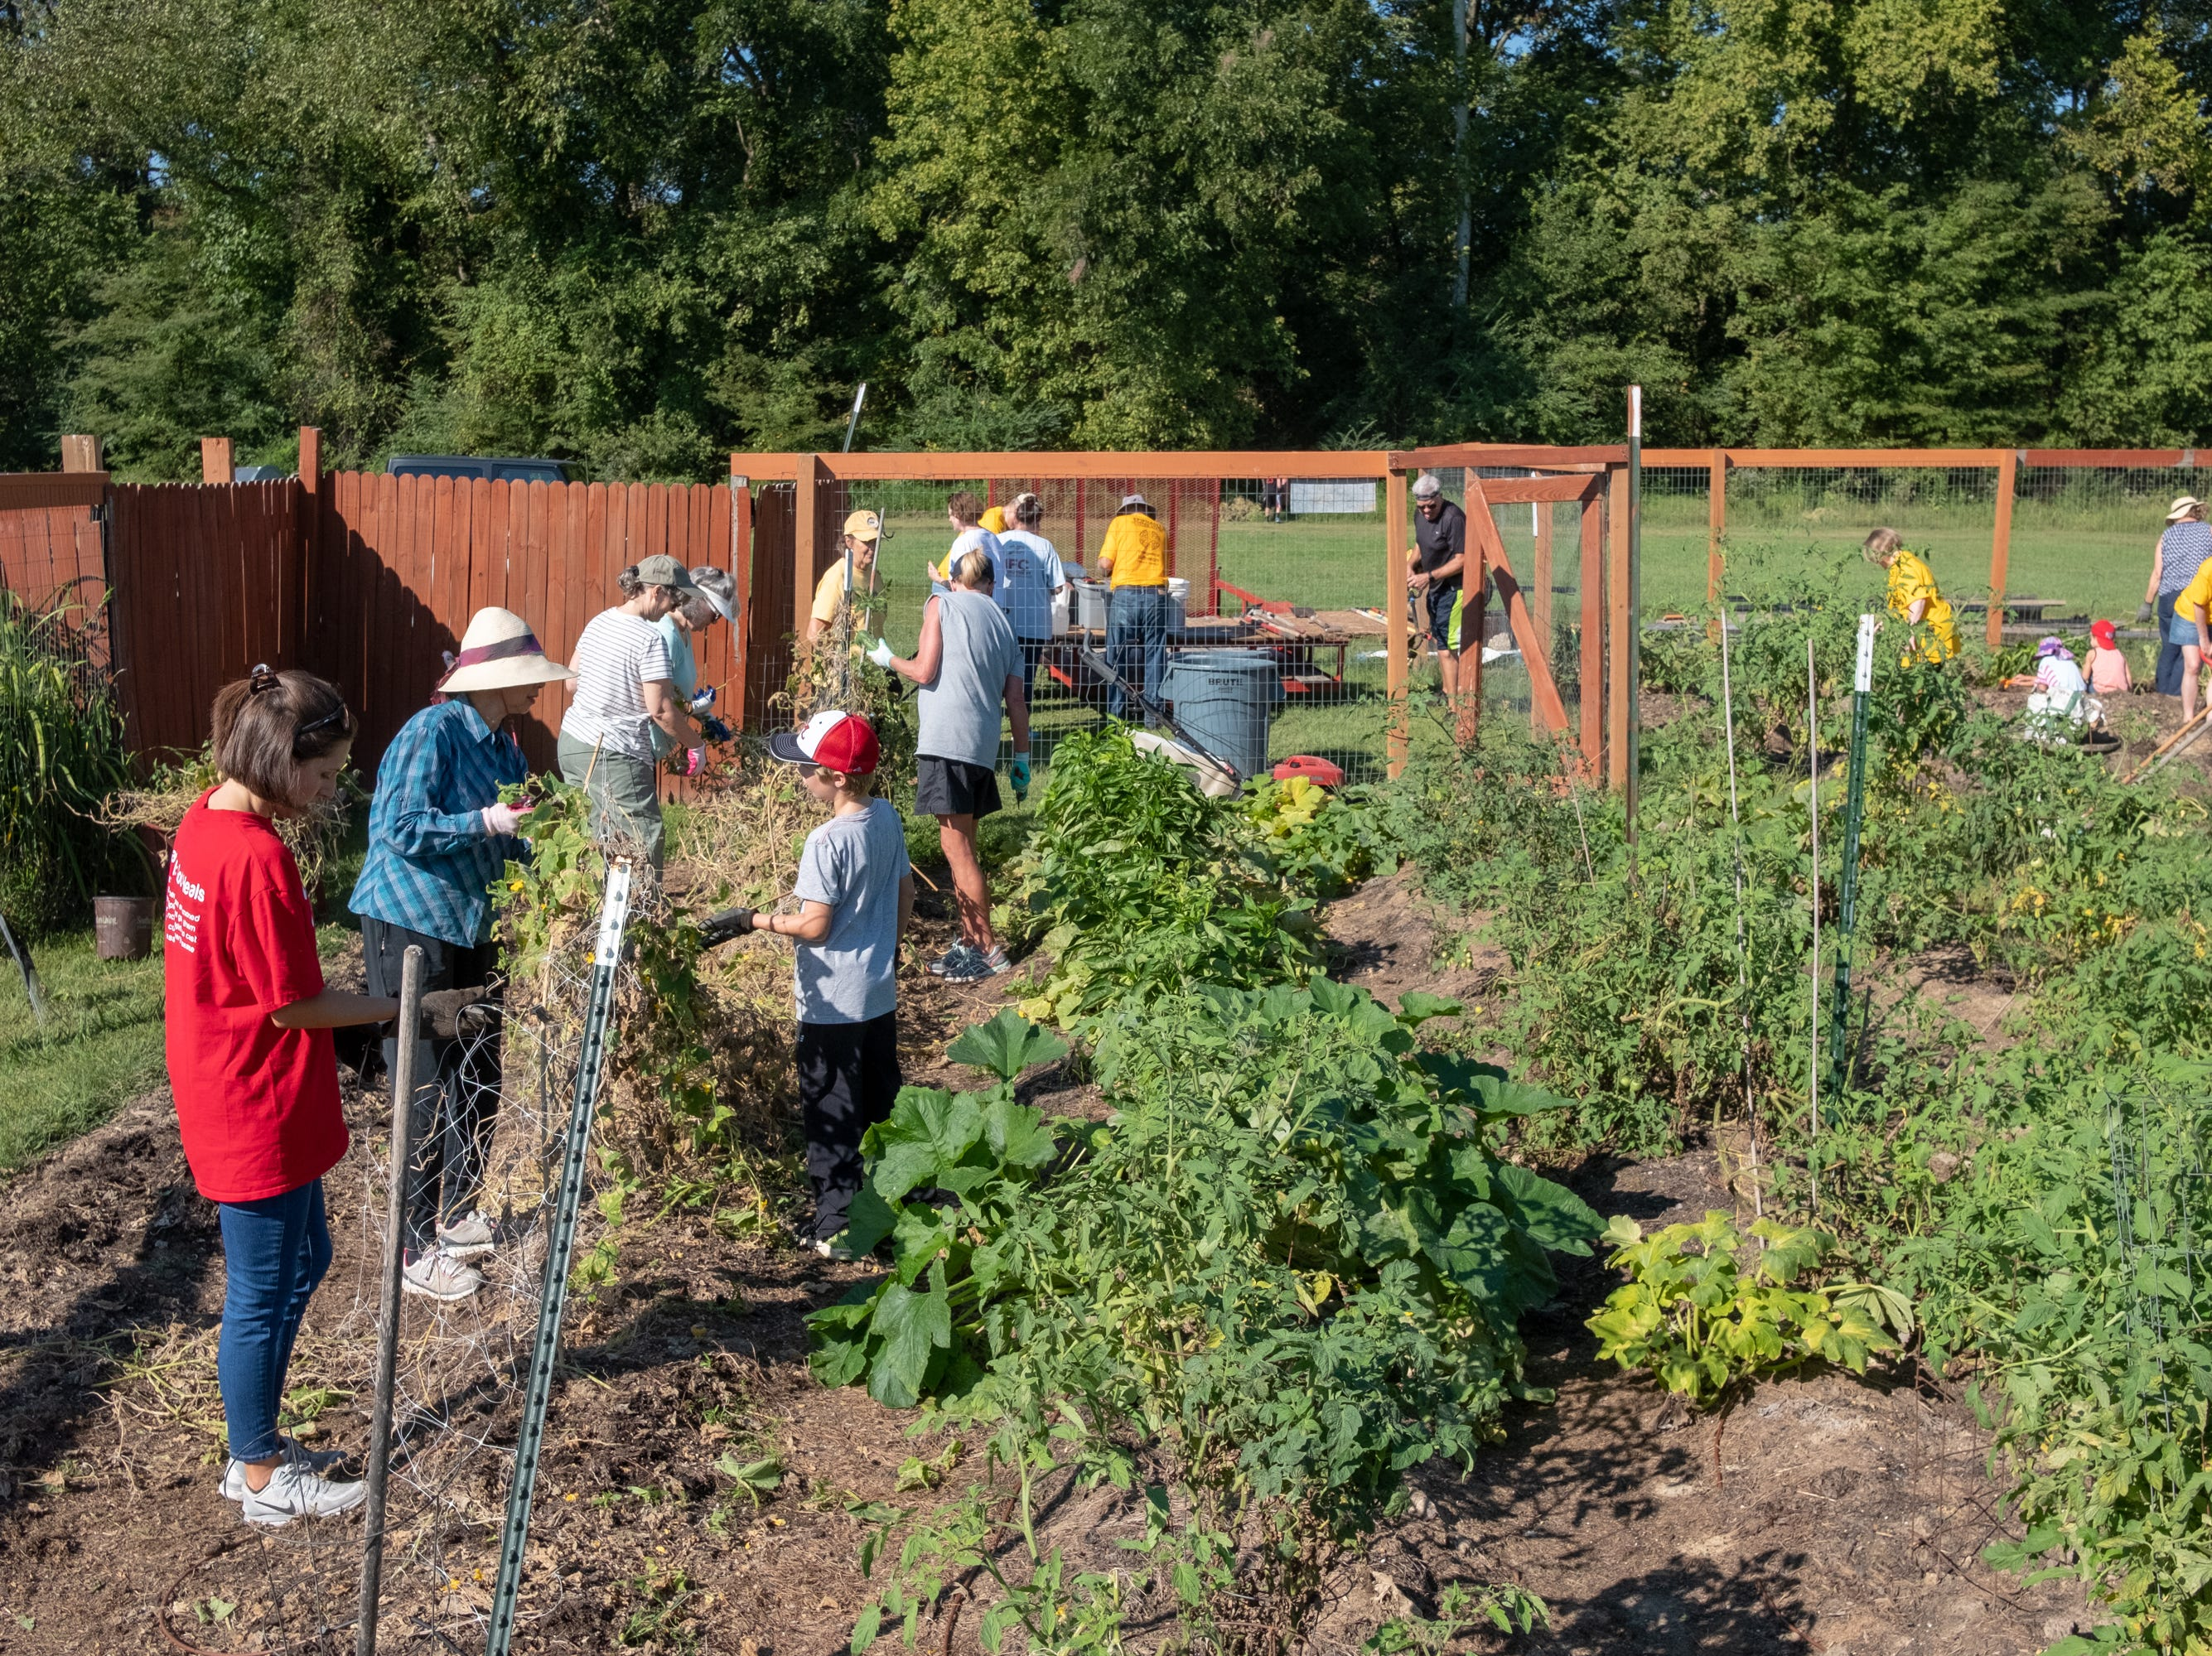 Volunteers harvest and clear old plants to prepare for the fall crop at the Epiphany Community Garden in Collierville on Saturday, Sept. 15, 2018.